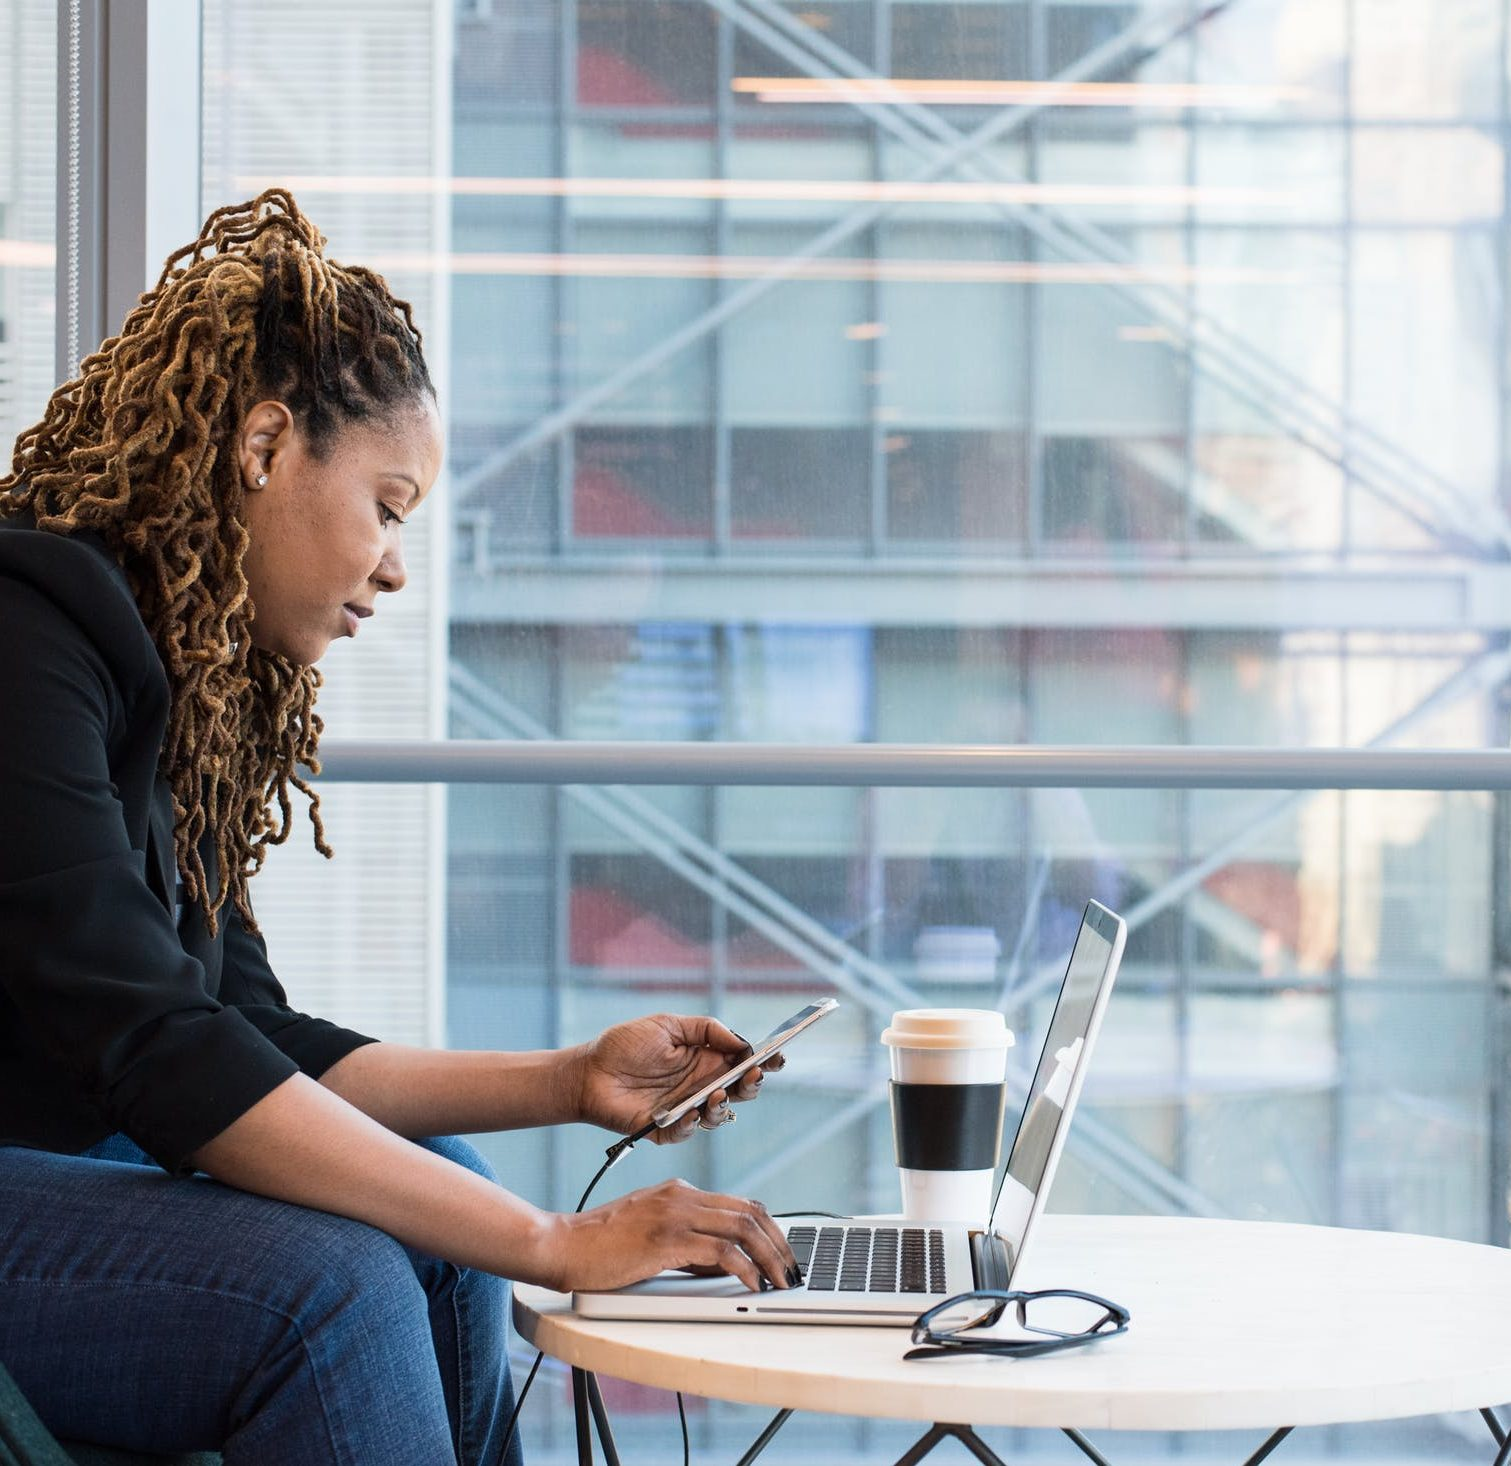 Photo: Woman with smartphone and coffee conducting remote work.